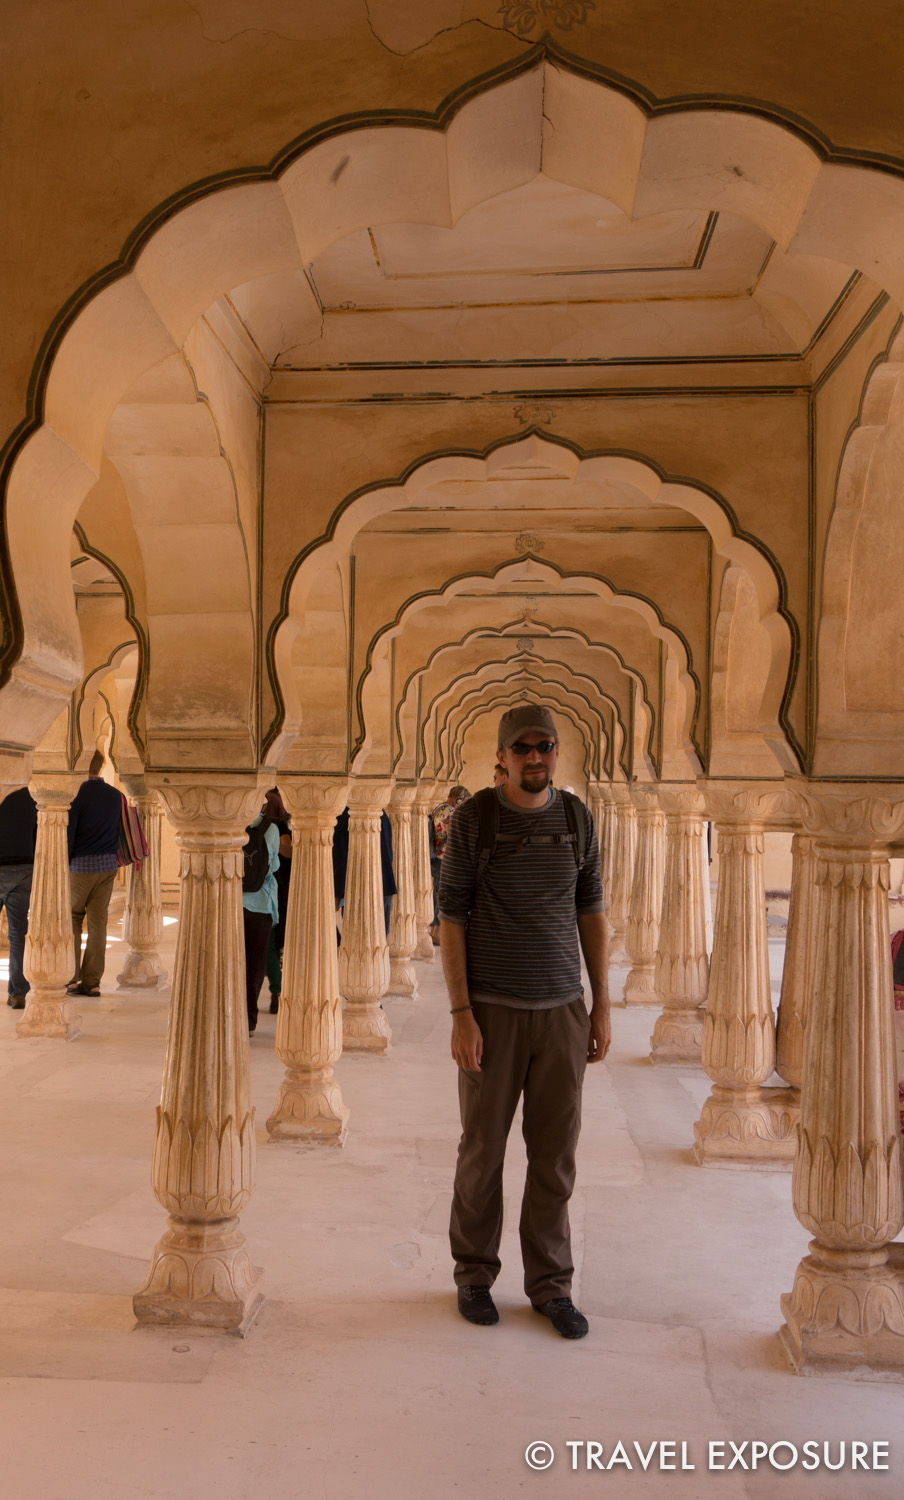 At Amber Fort: More scalloped arches (love these!) with lotus detail in the columns.